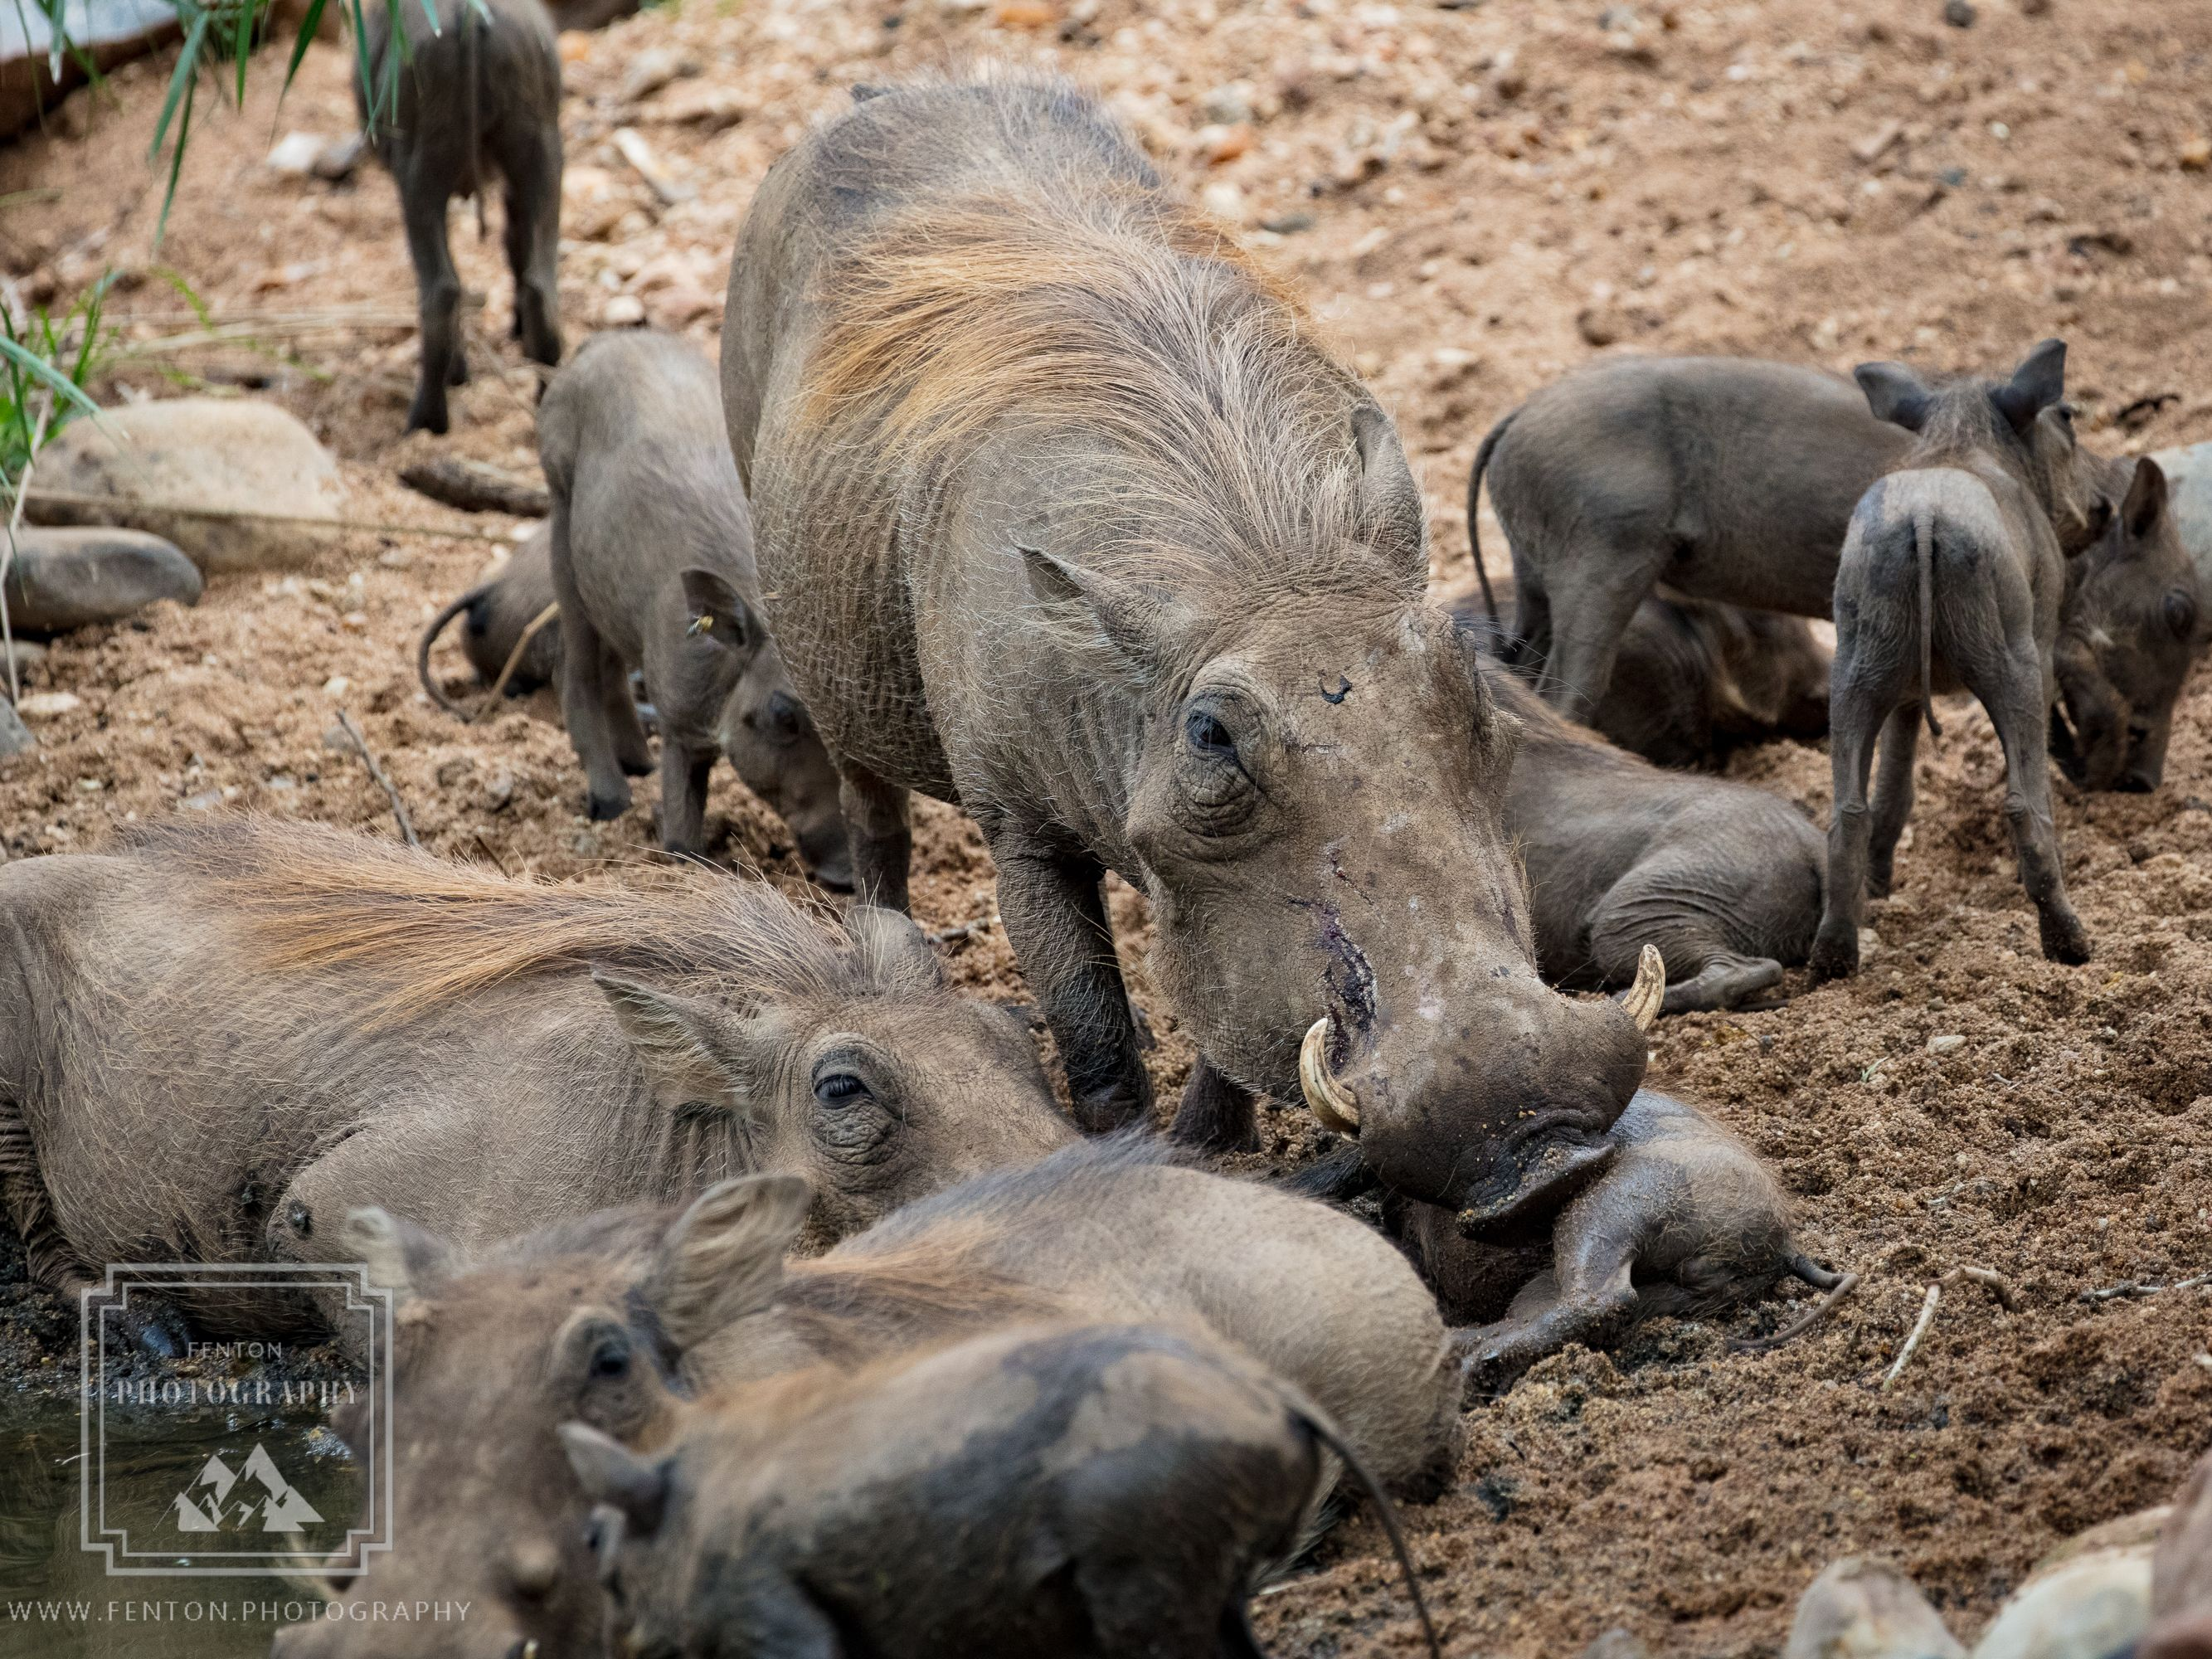 Group parenting is clearly how these adult warthogs tend their young.  #warthogs #wild_animals #wildlife #fauna #South_Africa #safari #nature @SouthAfrica @KrugerNational @NatGeoPhotos @natgeoyourshot